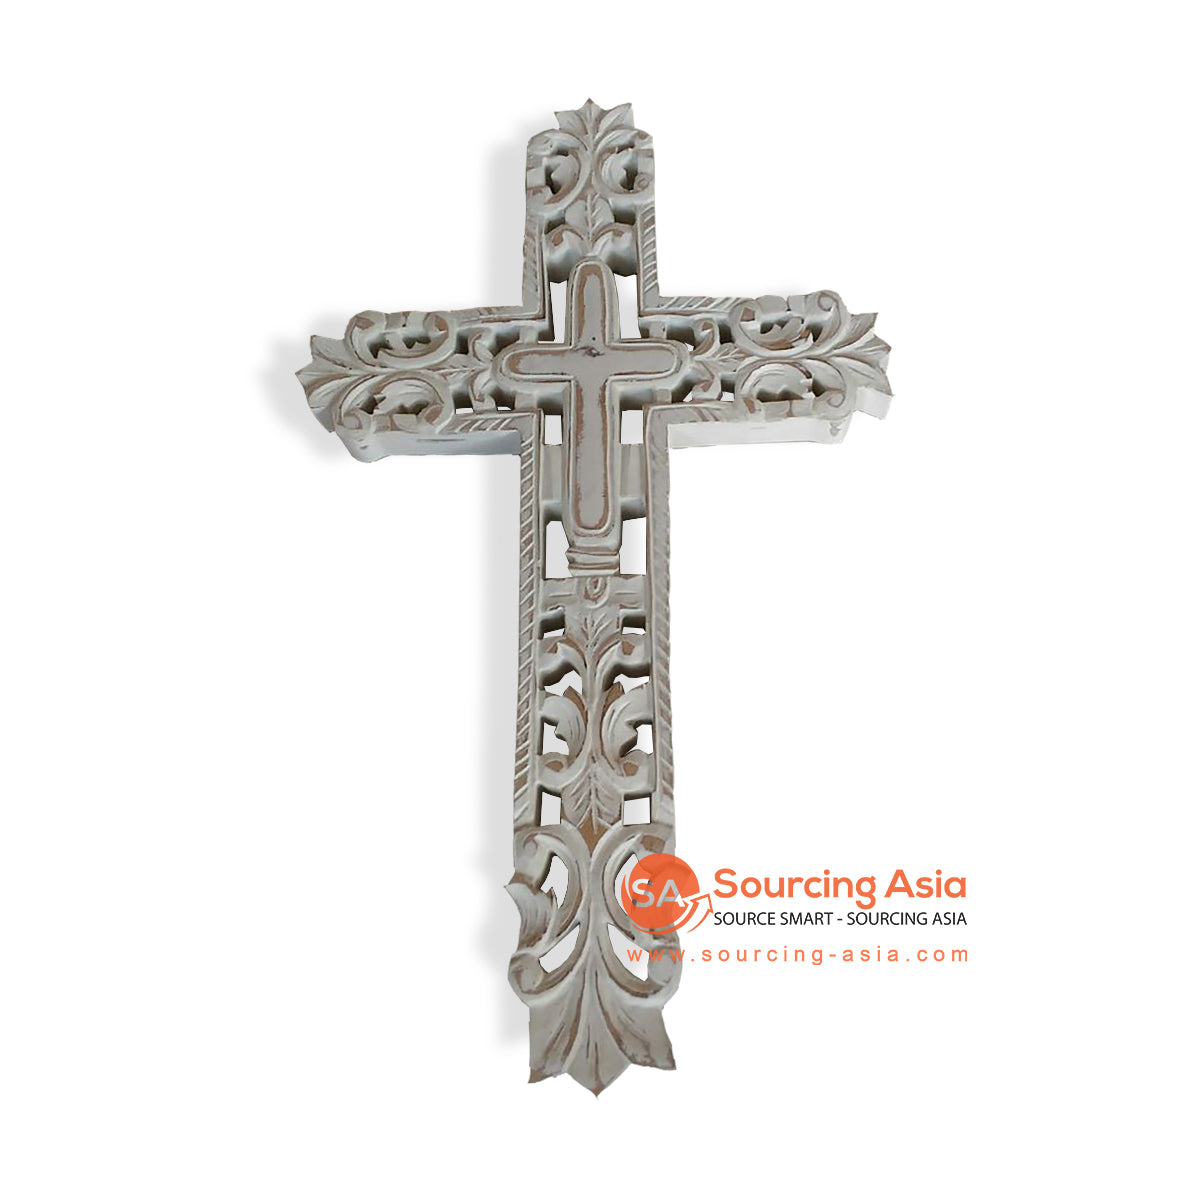 EXA116-50B WOODEN CROSS WITH CARVING